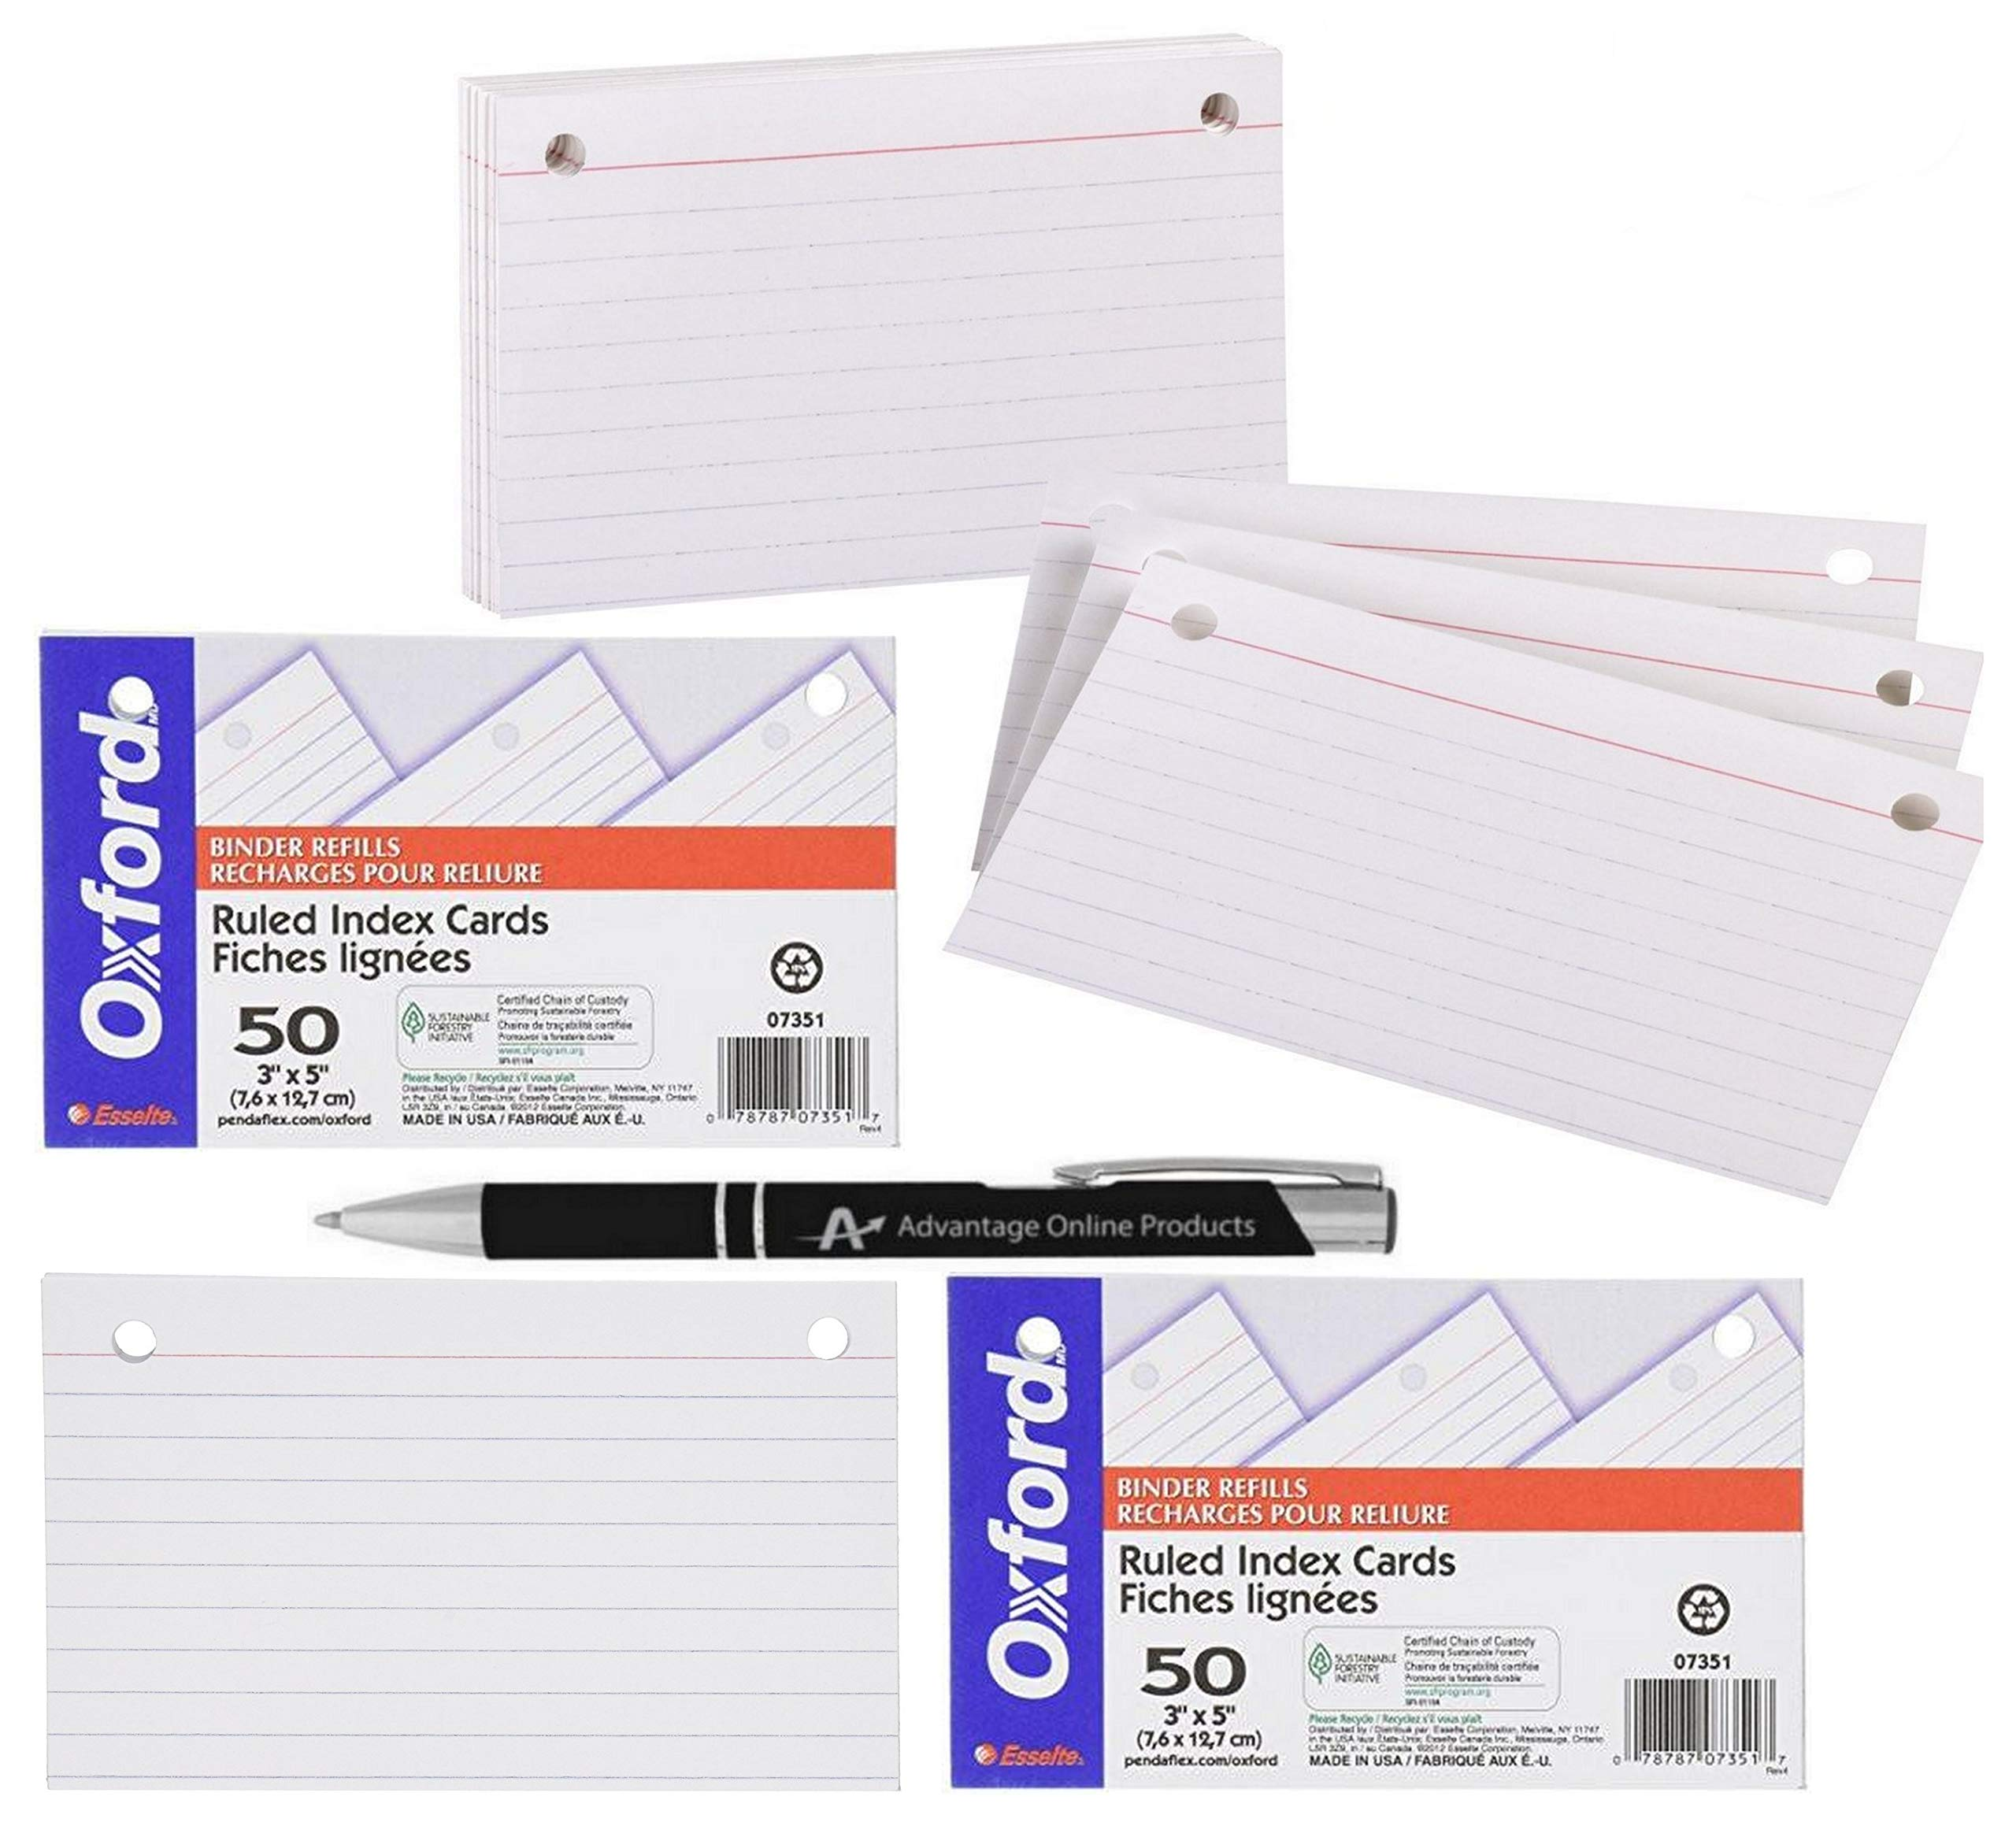 5 Pack Value Bundle Oxford 2 Hole Punched 3'' x 5'' Index Card Binder Refills for 73569 Binder with Bonus AdvantageOP Black and Chrome Retractable Pen by Advantage Online Products, LLC